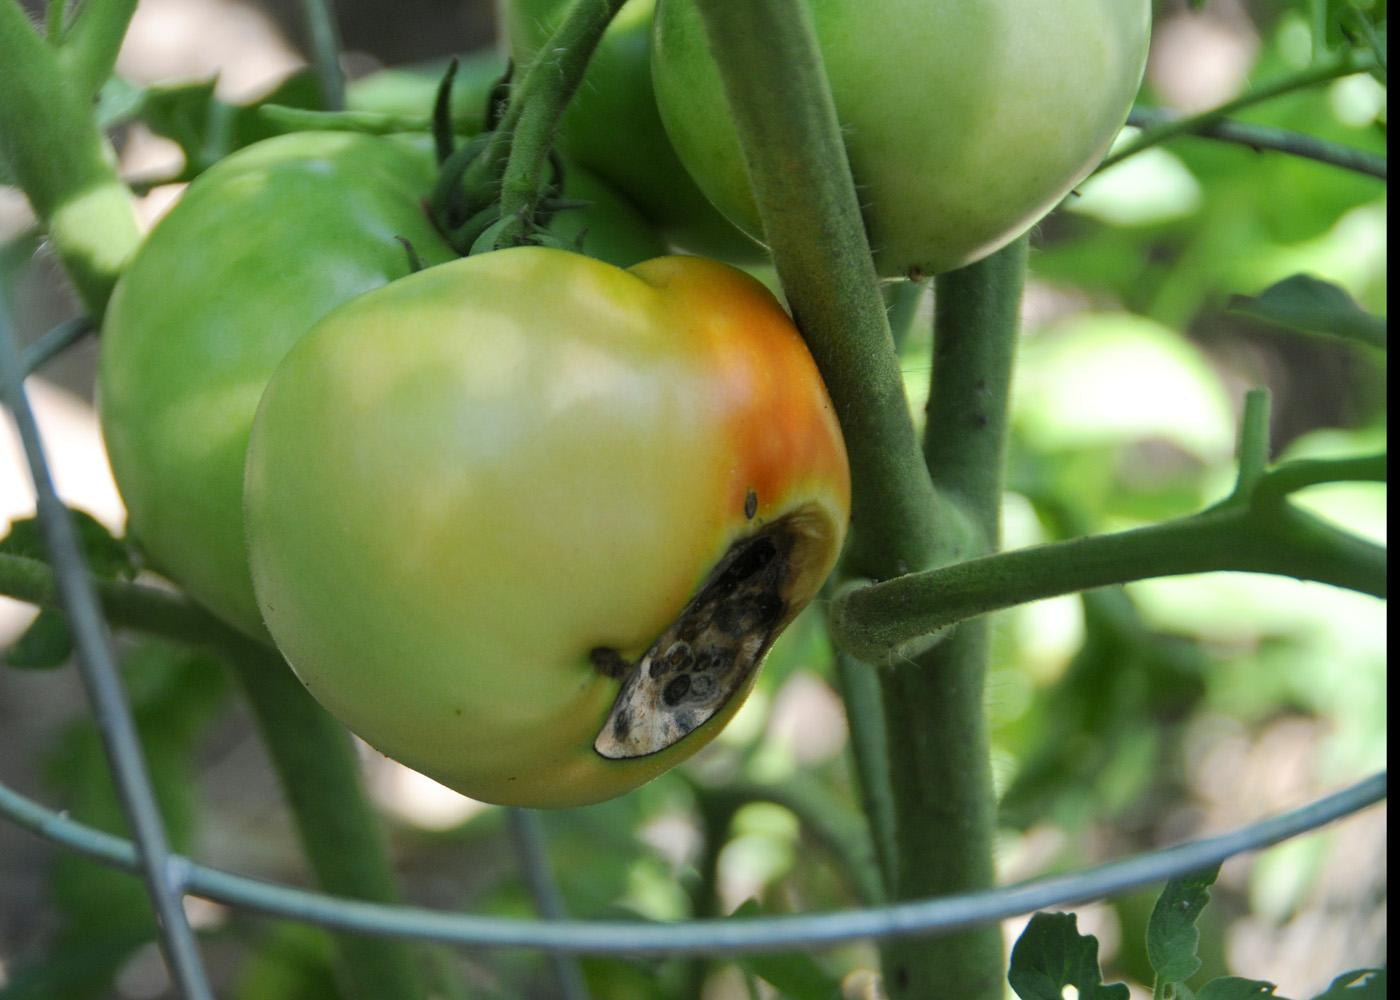 Blossom-end rot, seen on this tomato, is a common problem in home gardens. It is typically caused by uneven watering, which prevents enough calcium from reaching the fruit. (Photo by MSU Ag Communications/Scott Corey)